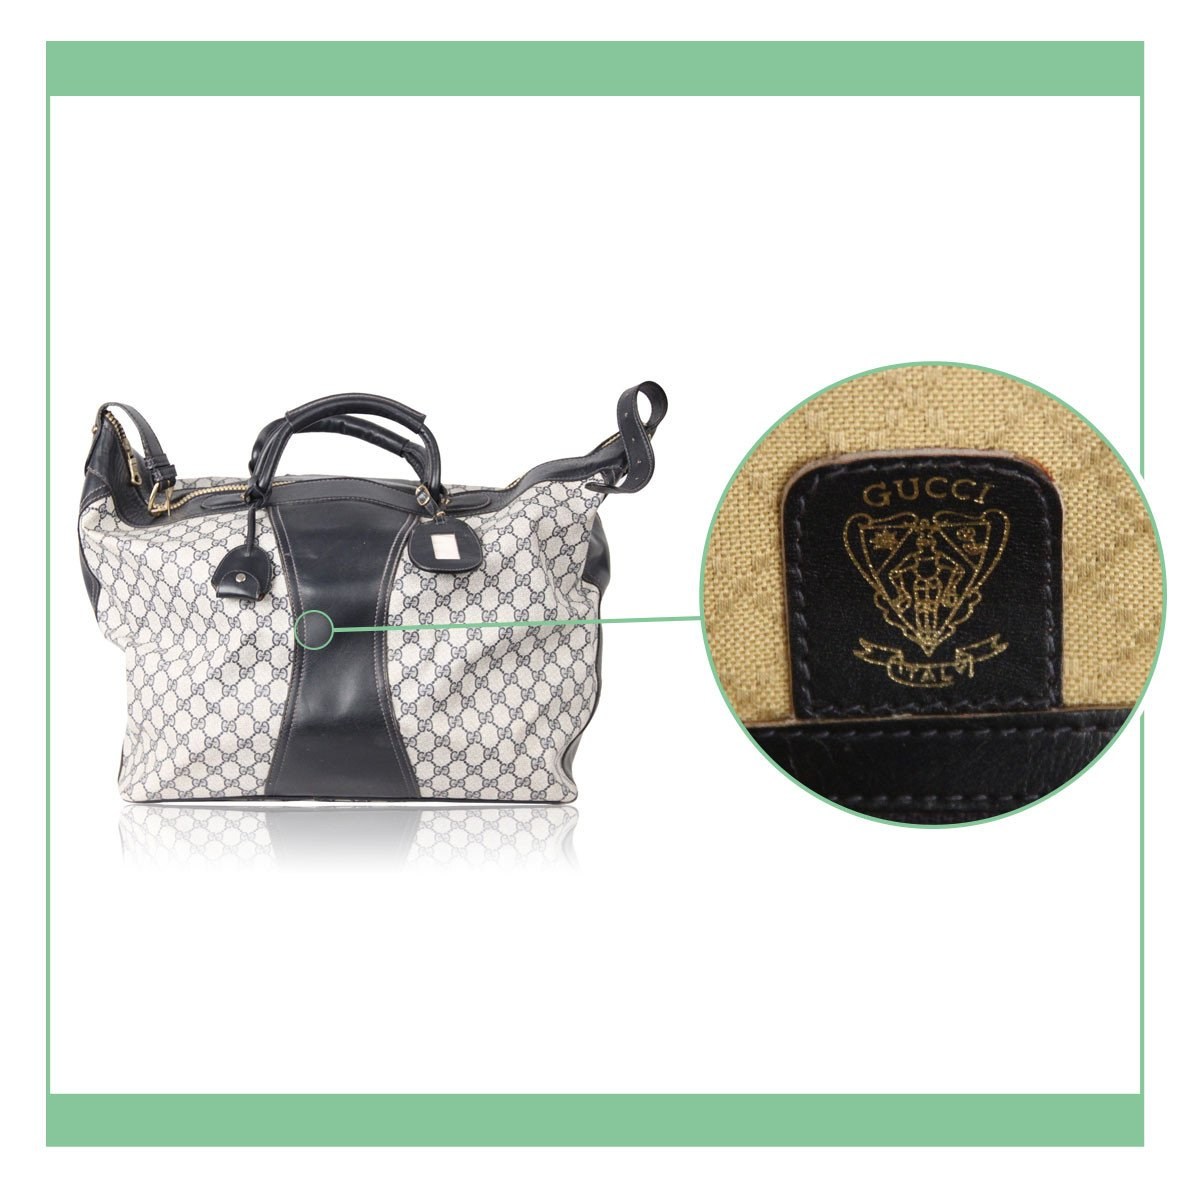 """32bfc300417 Here s what you should expect when you purchase a Gucci bag from a  professional seller when you read """"NEW"""" or """"MINT"""""""